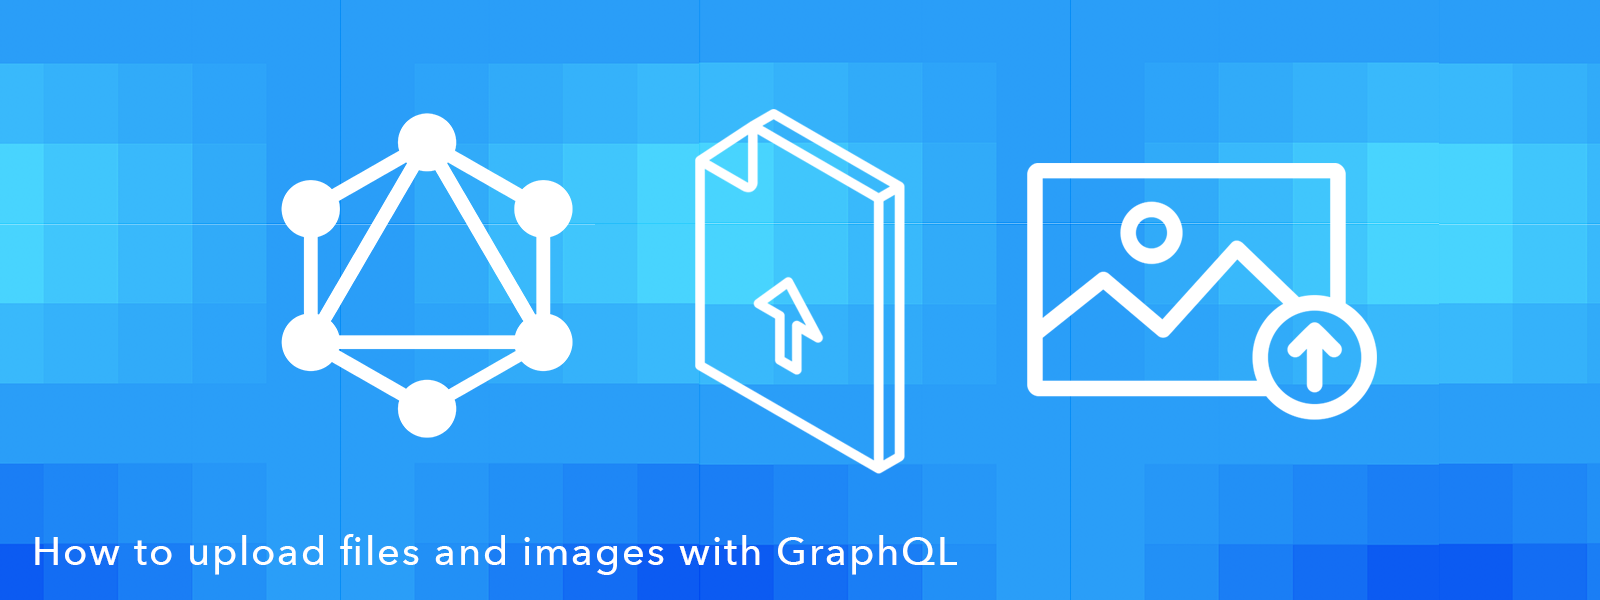 How to upload files and images with GraphQL